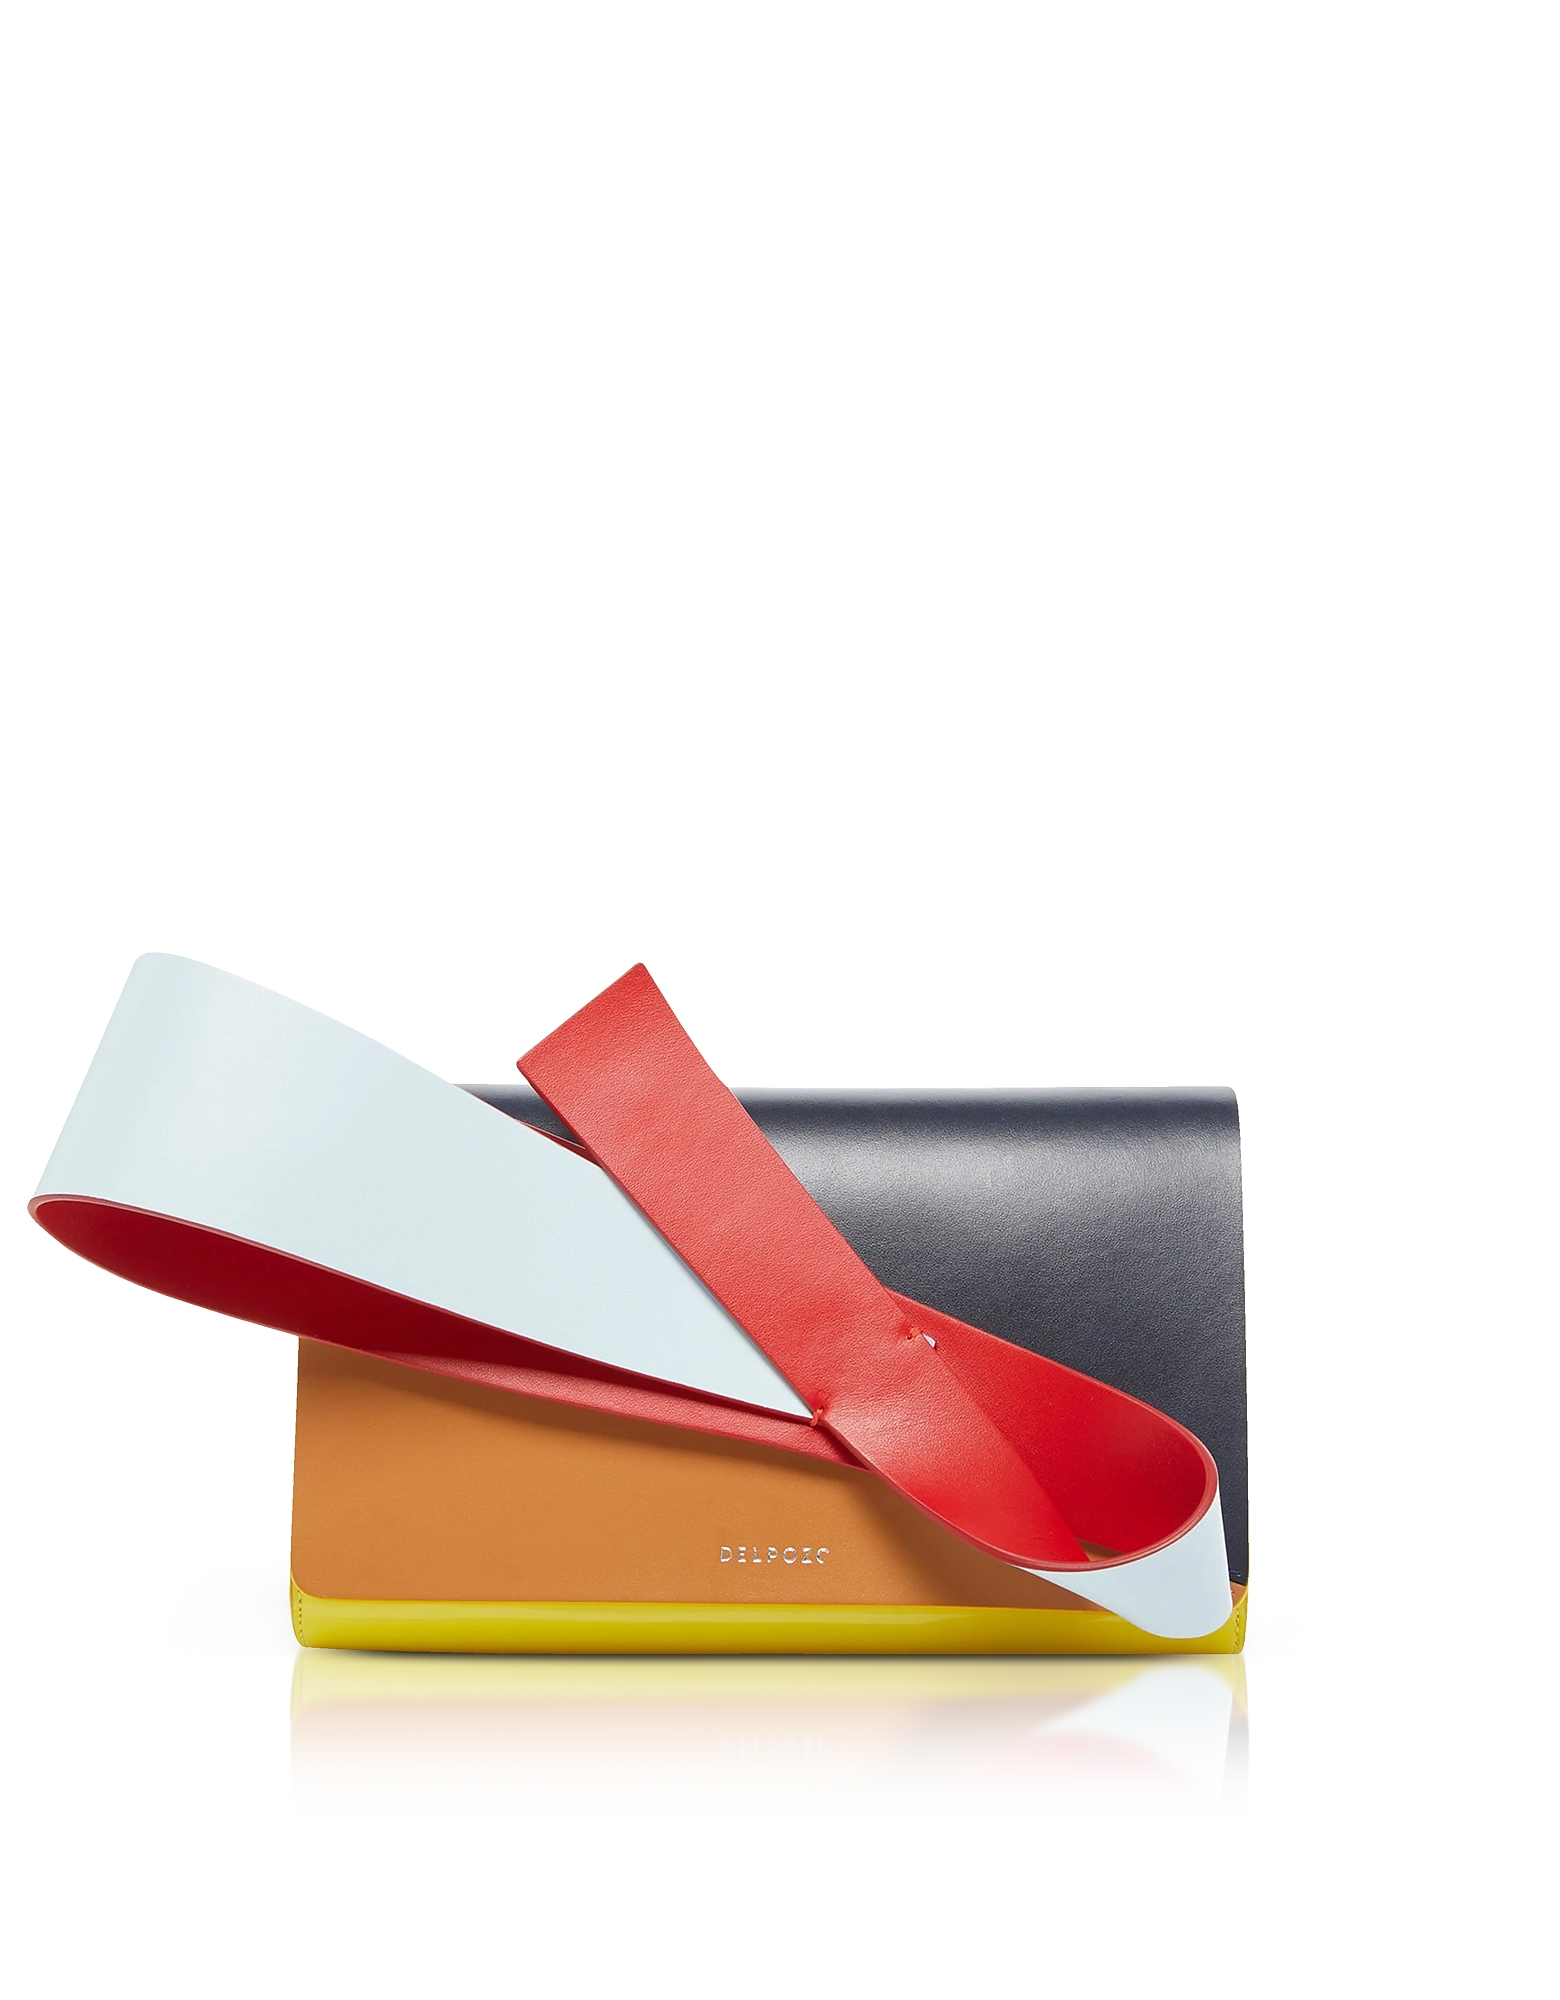 Orchid Clutch in Pelle Color Block